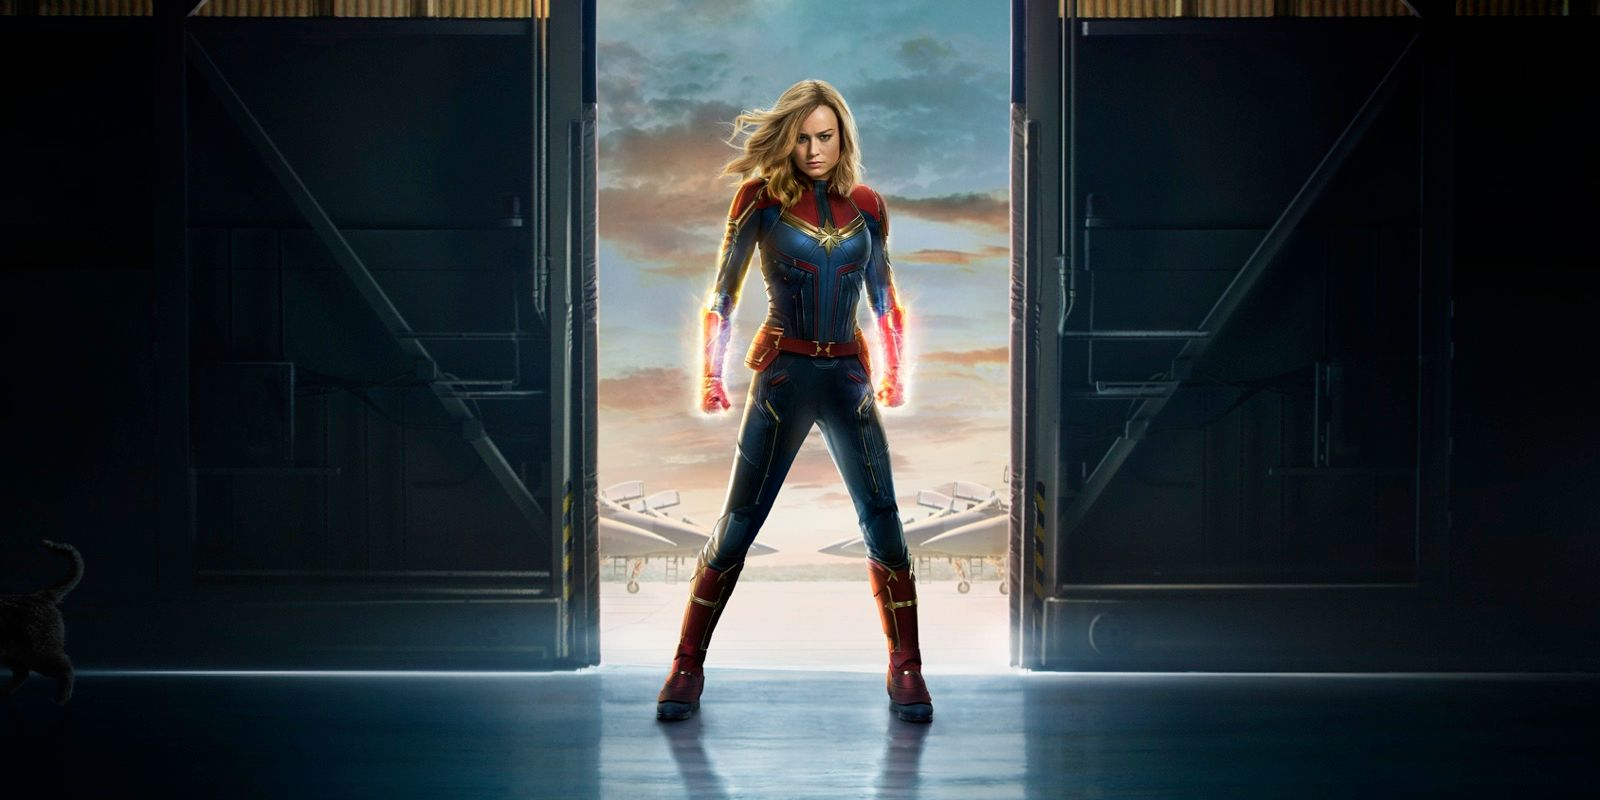 Marvel Movie Posters: Official Captain Marvel Movie Teaser Poster Released